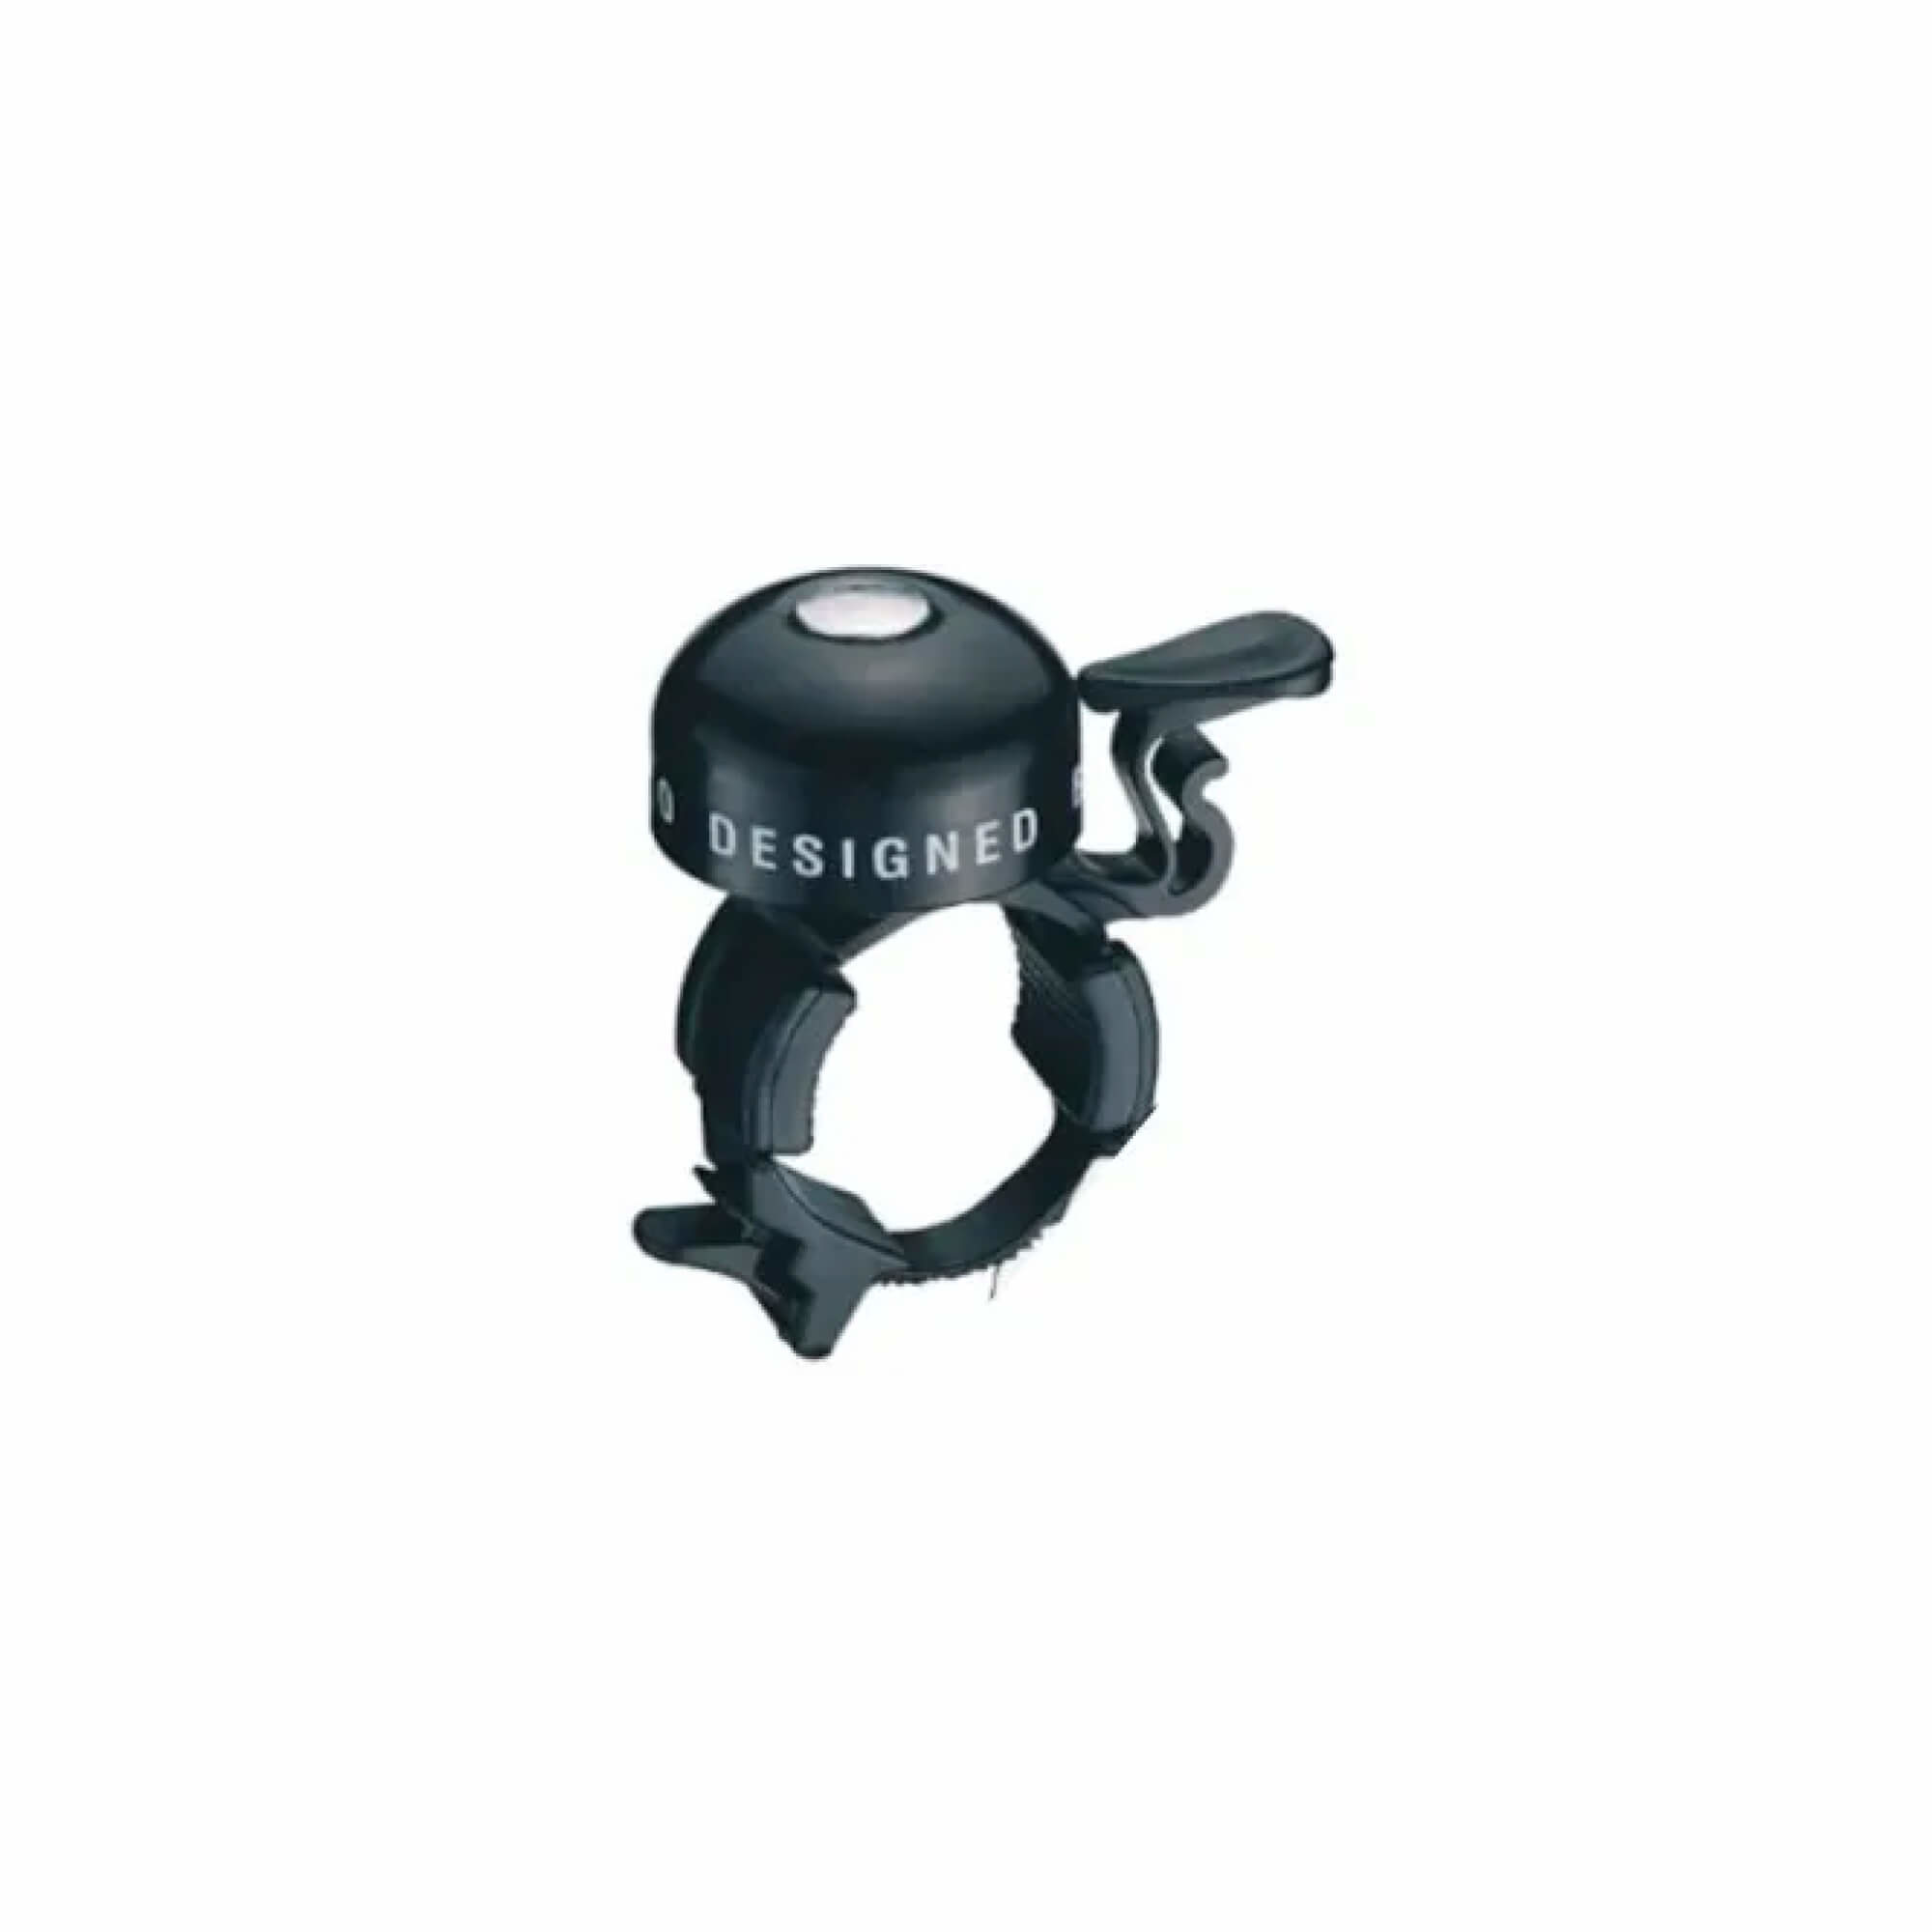 Alloy Black Bell With Plastic Strap Mount-1